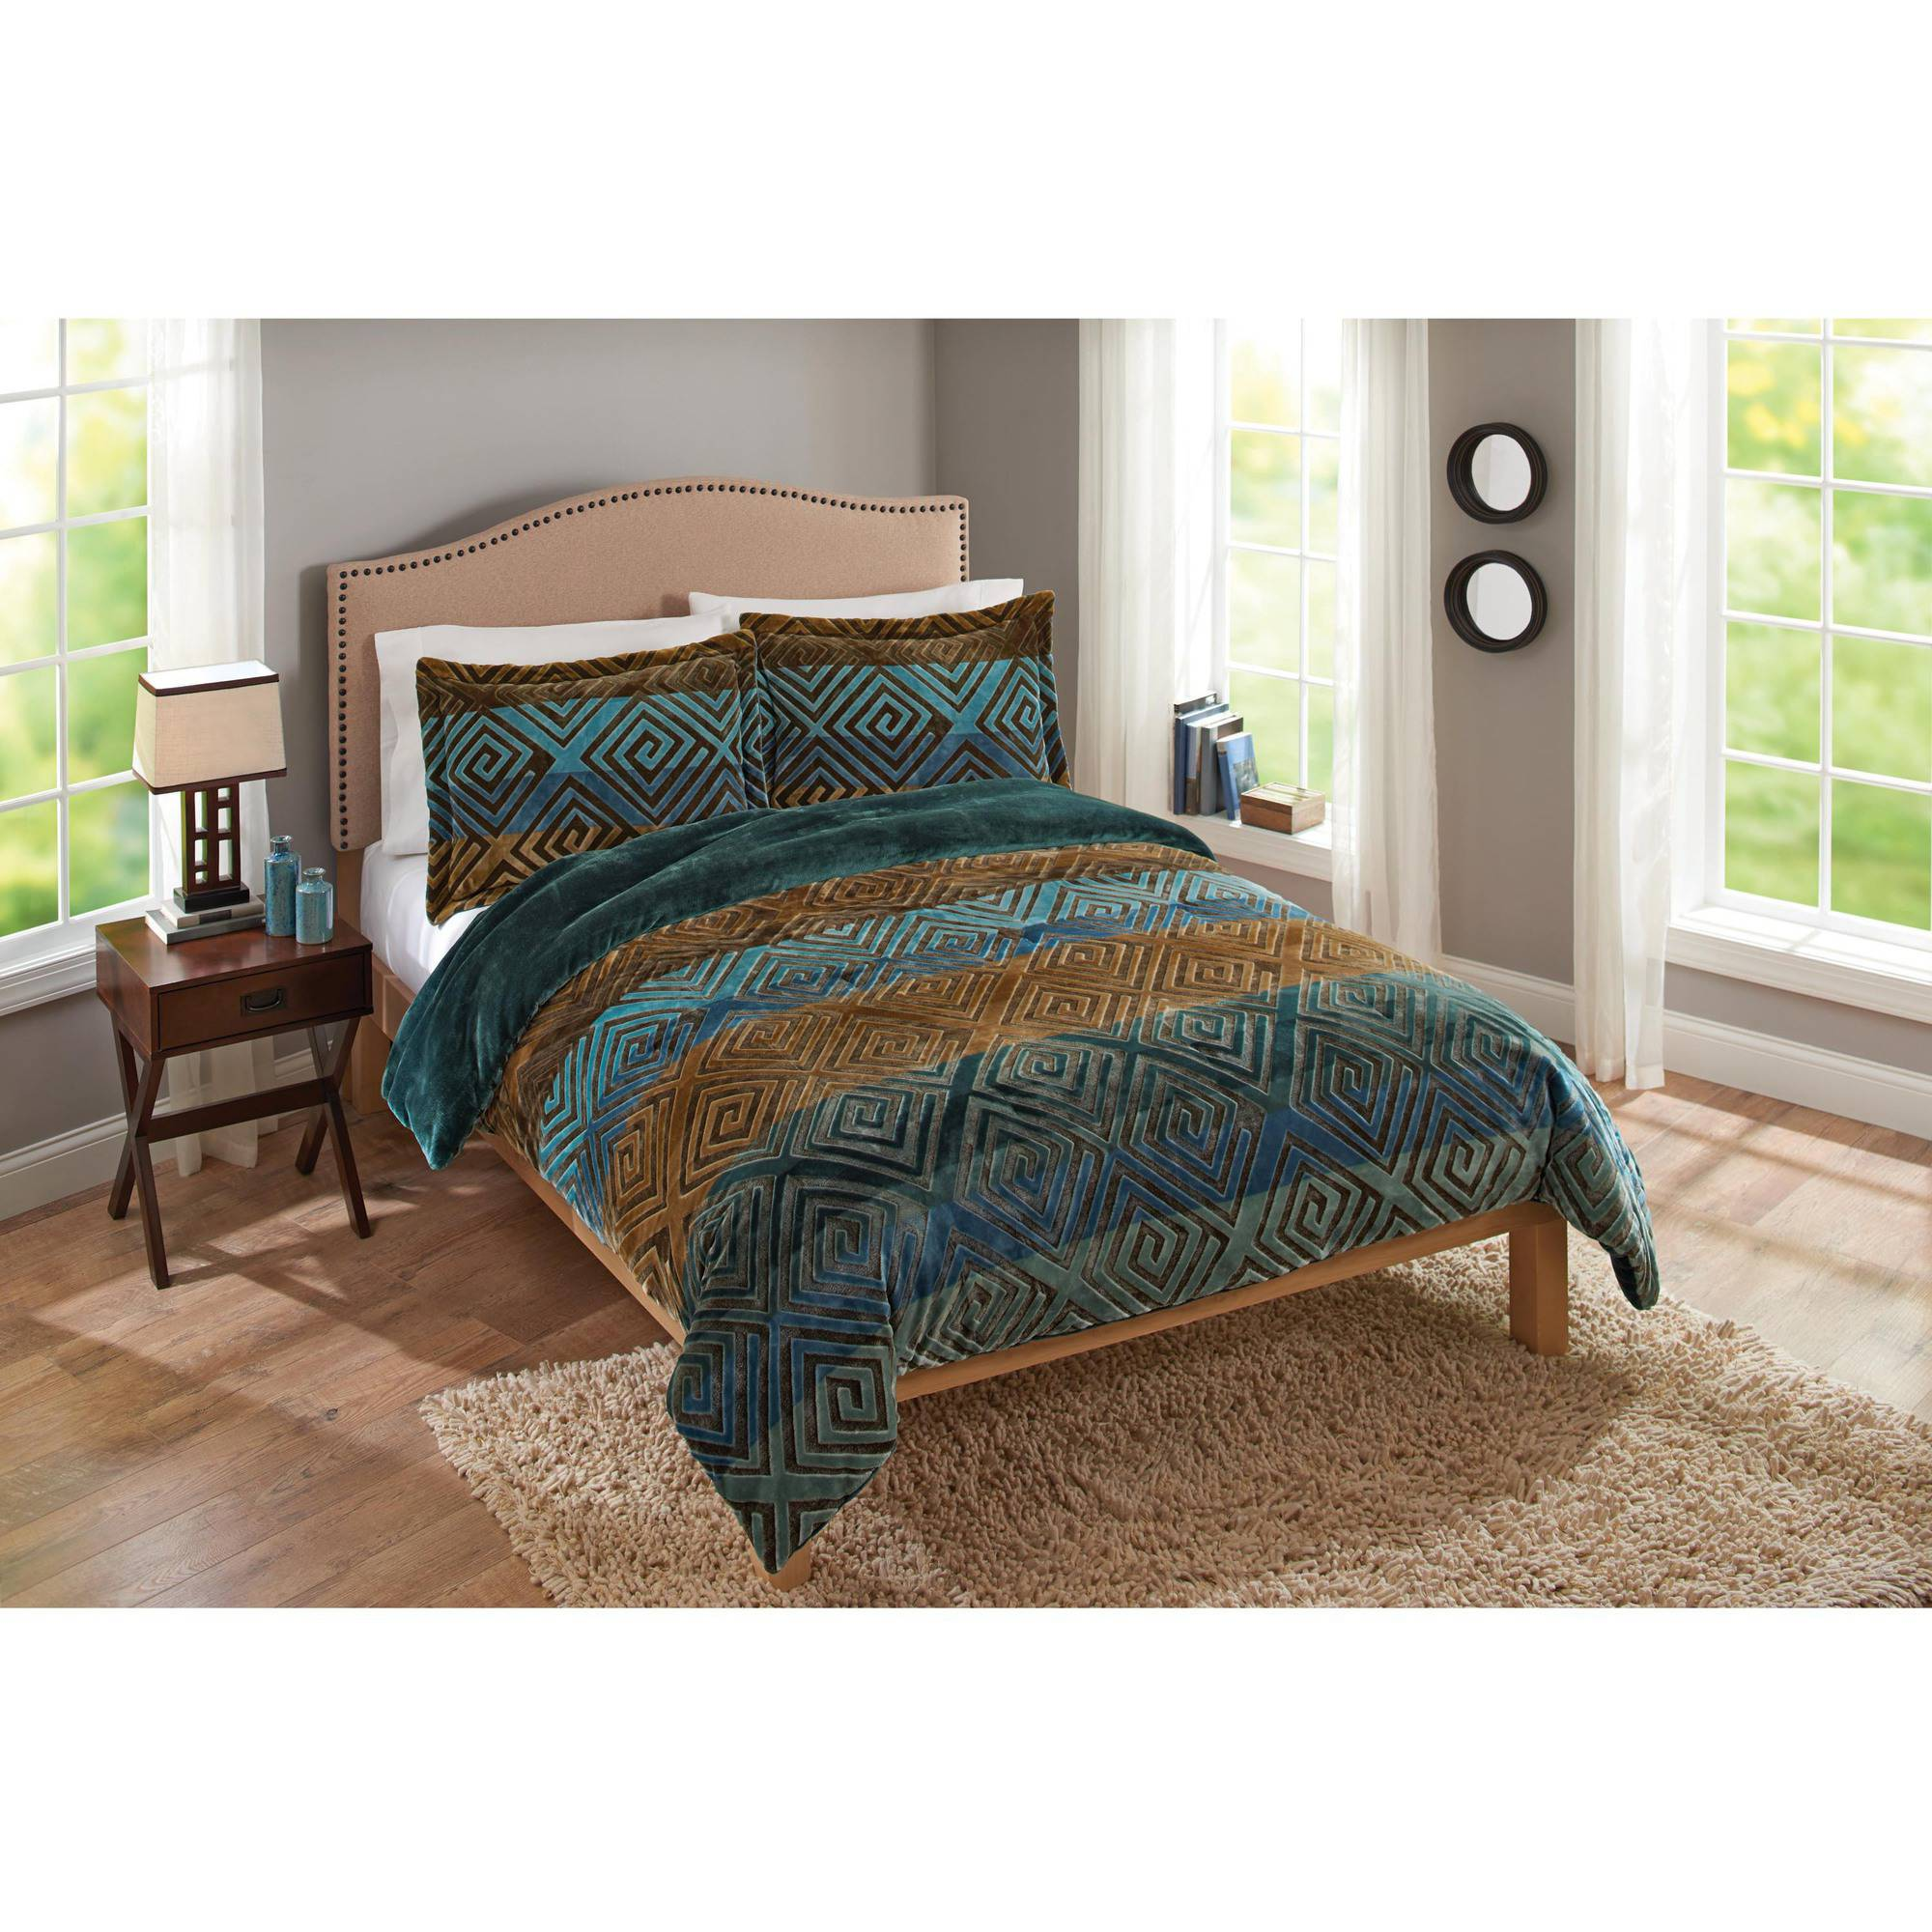 Savoy Velvet Plush Print Bedding Comforter Mini Set by Sun Yin